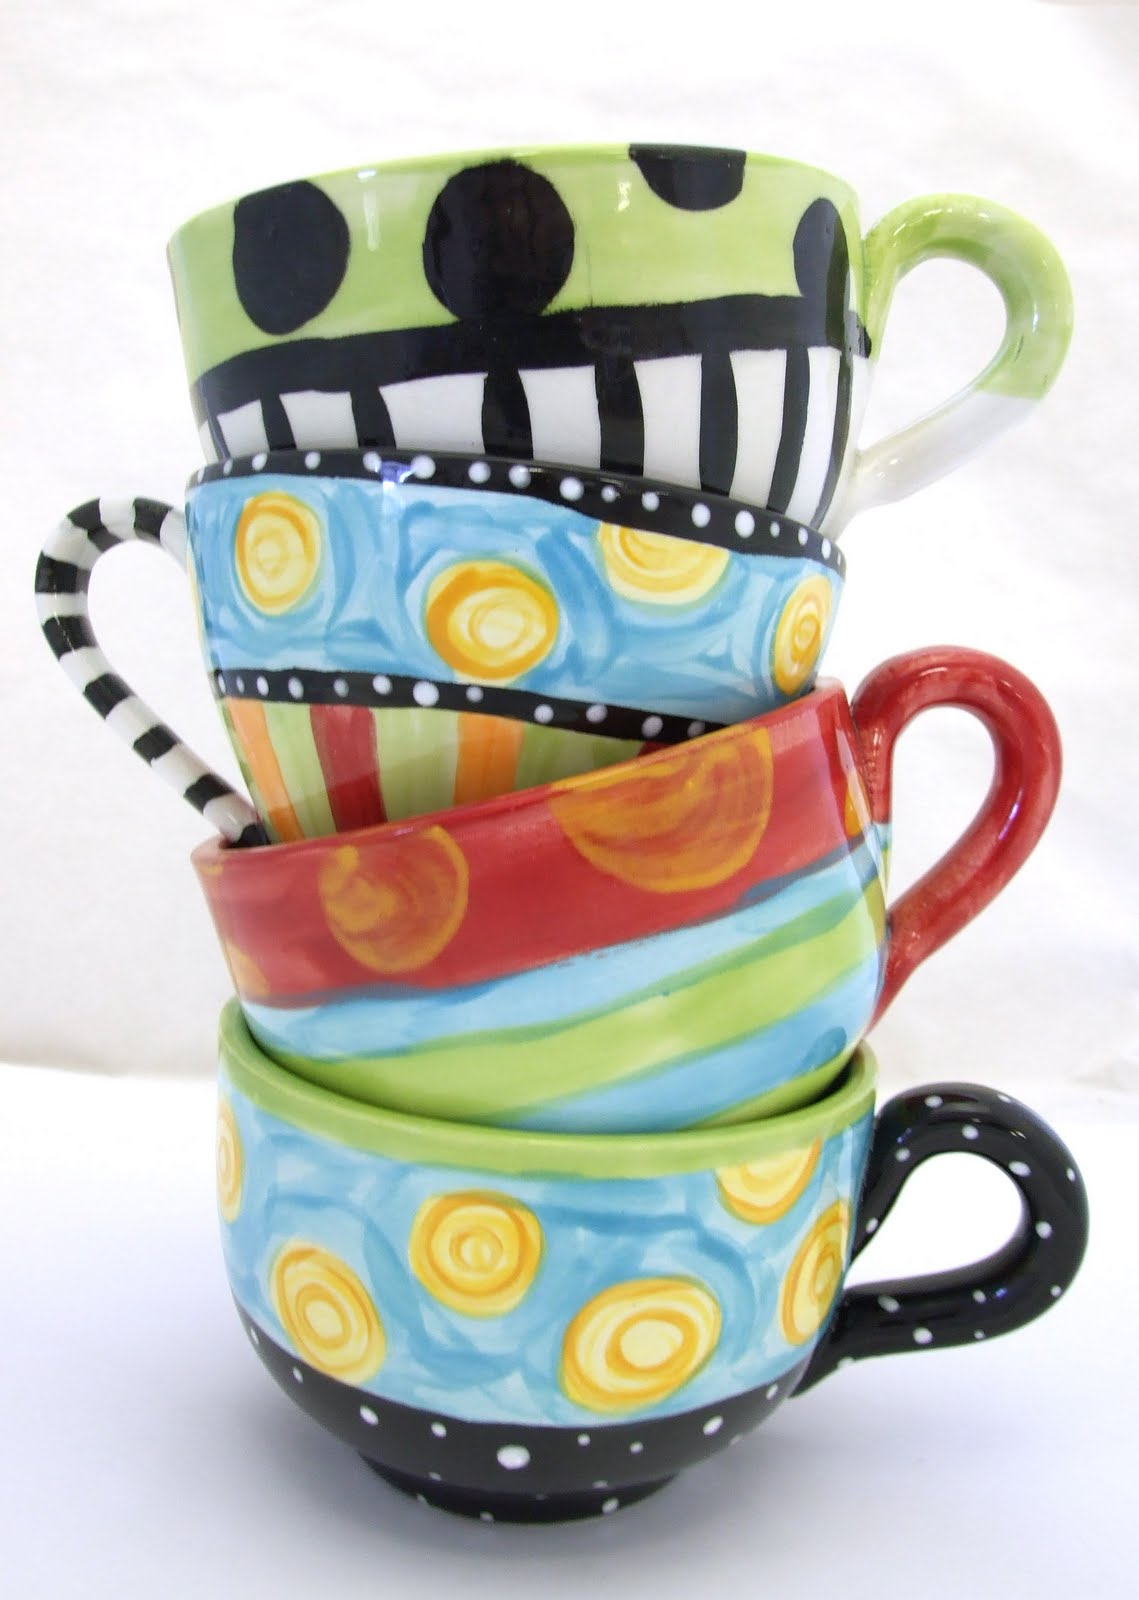 learn more at 4bpblogspotcom pottery painting ideas - Pottery Design Ideas